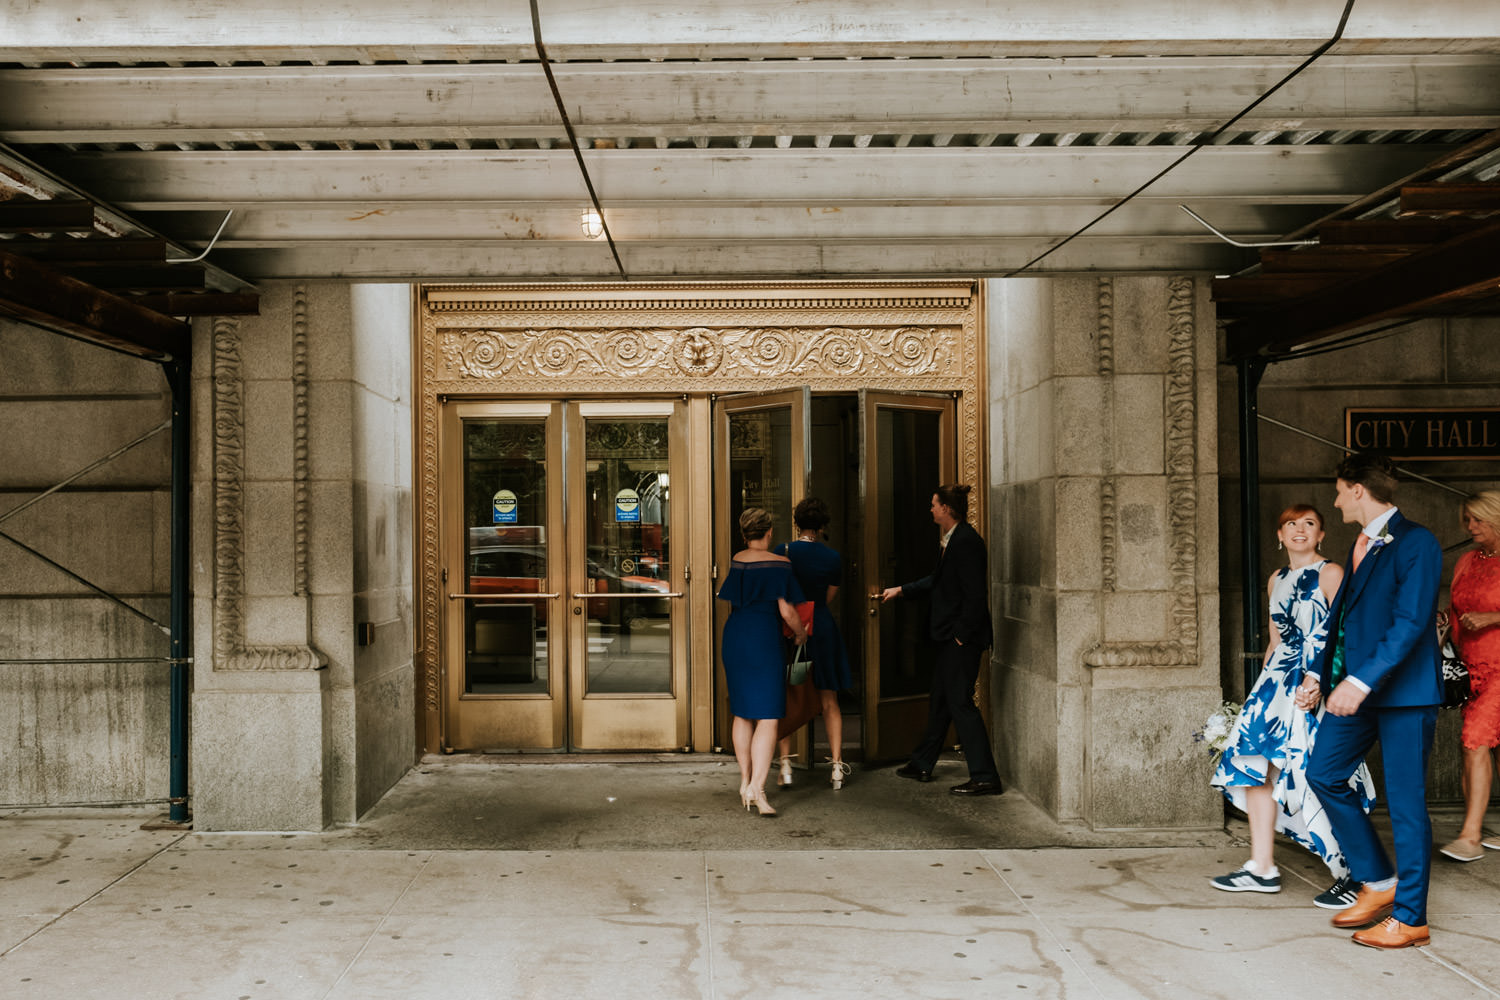 Bride and groom walk to the civil court in Chicago during their elopement